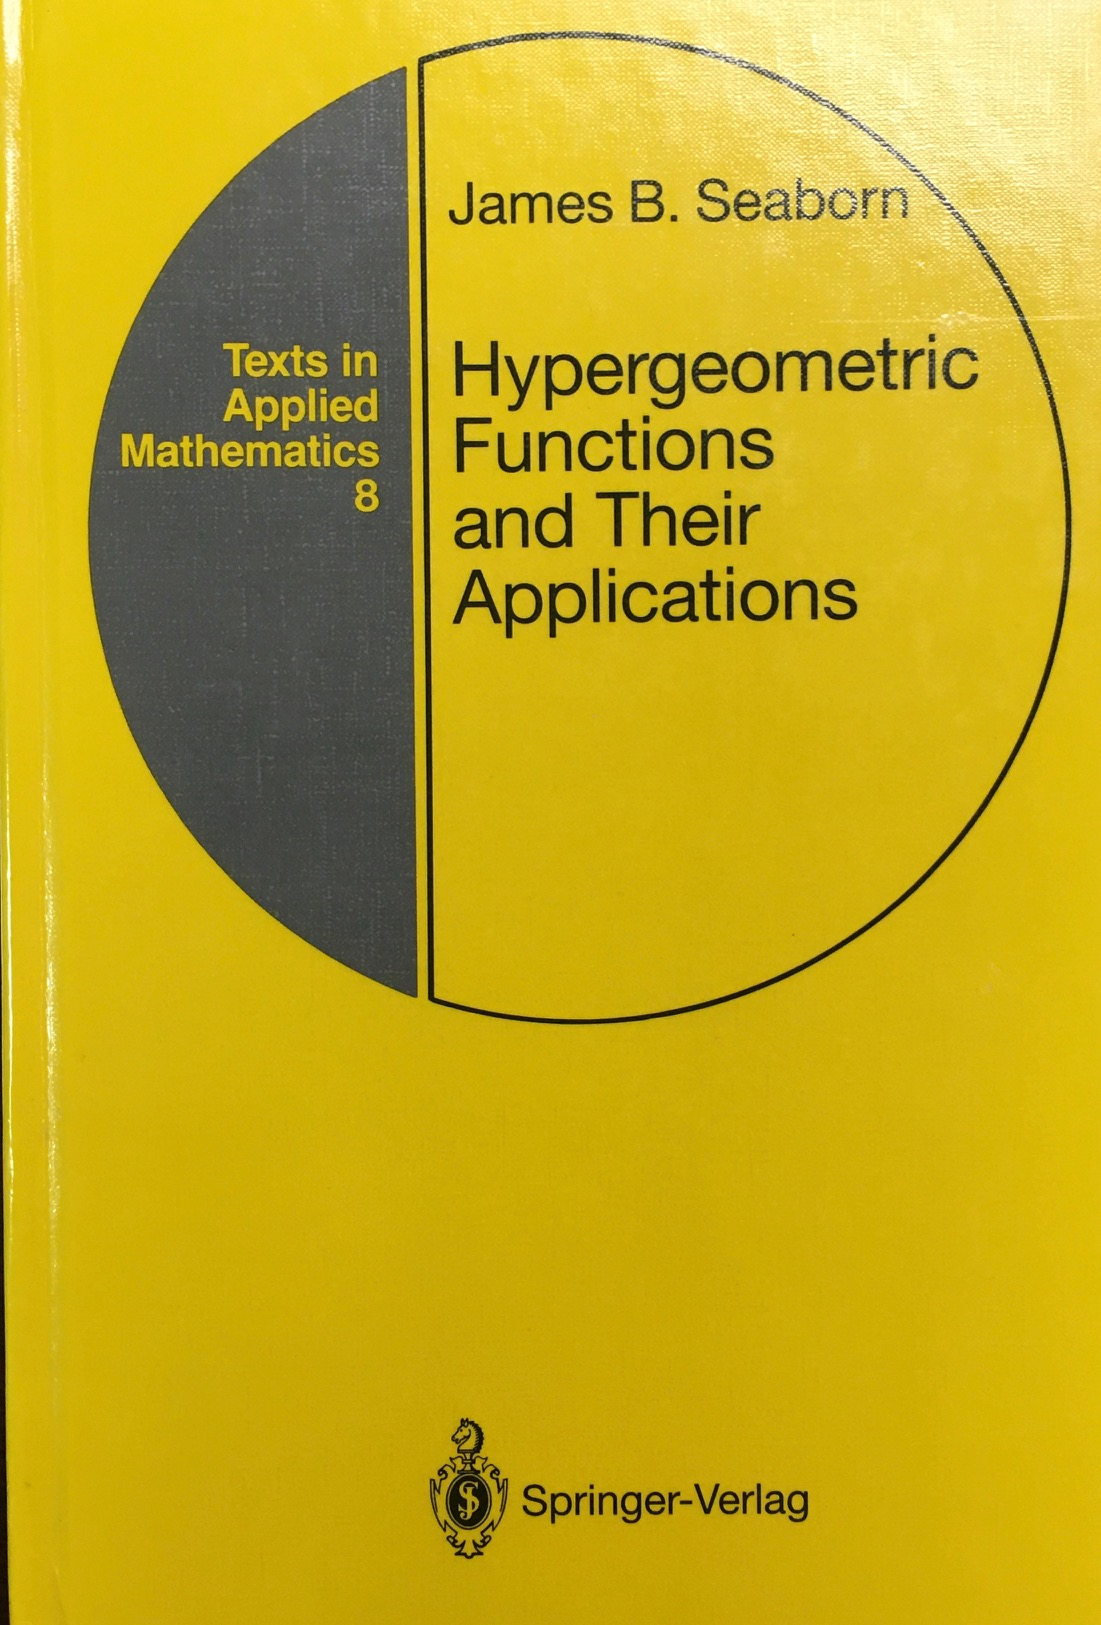 Image for Hypergeometric Functions and Their Applications (Texts in Applied Mathematics #8)